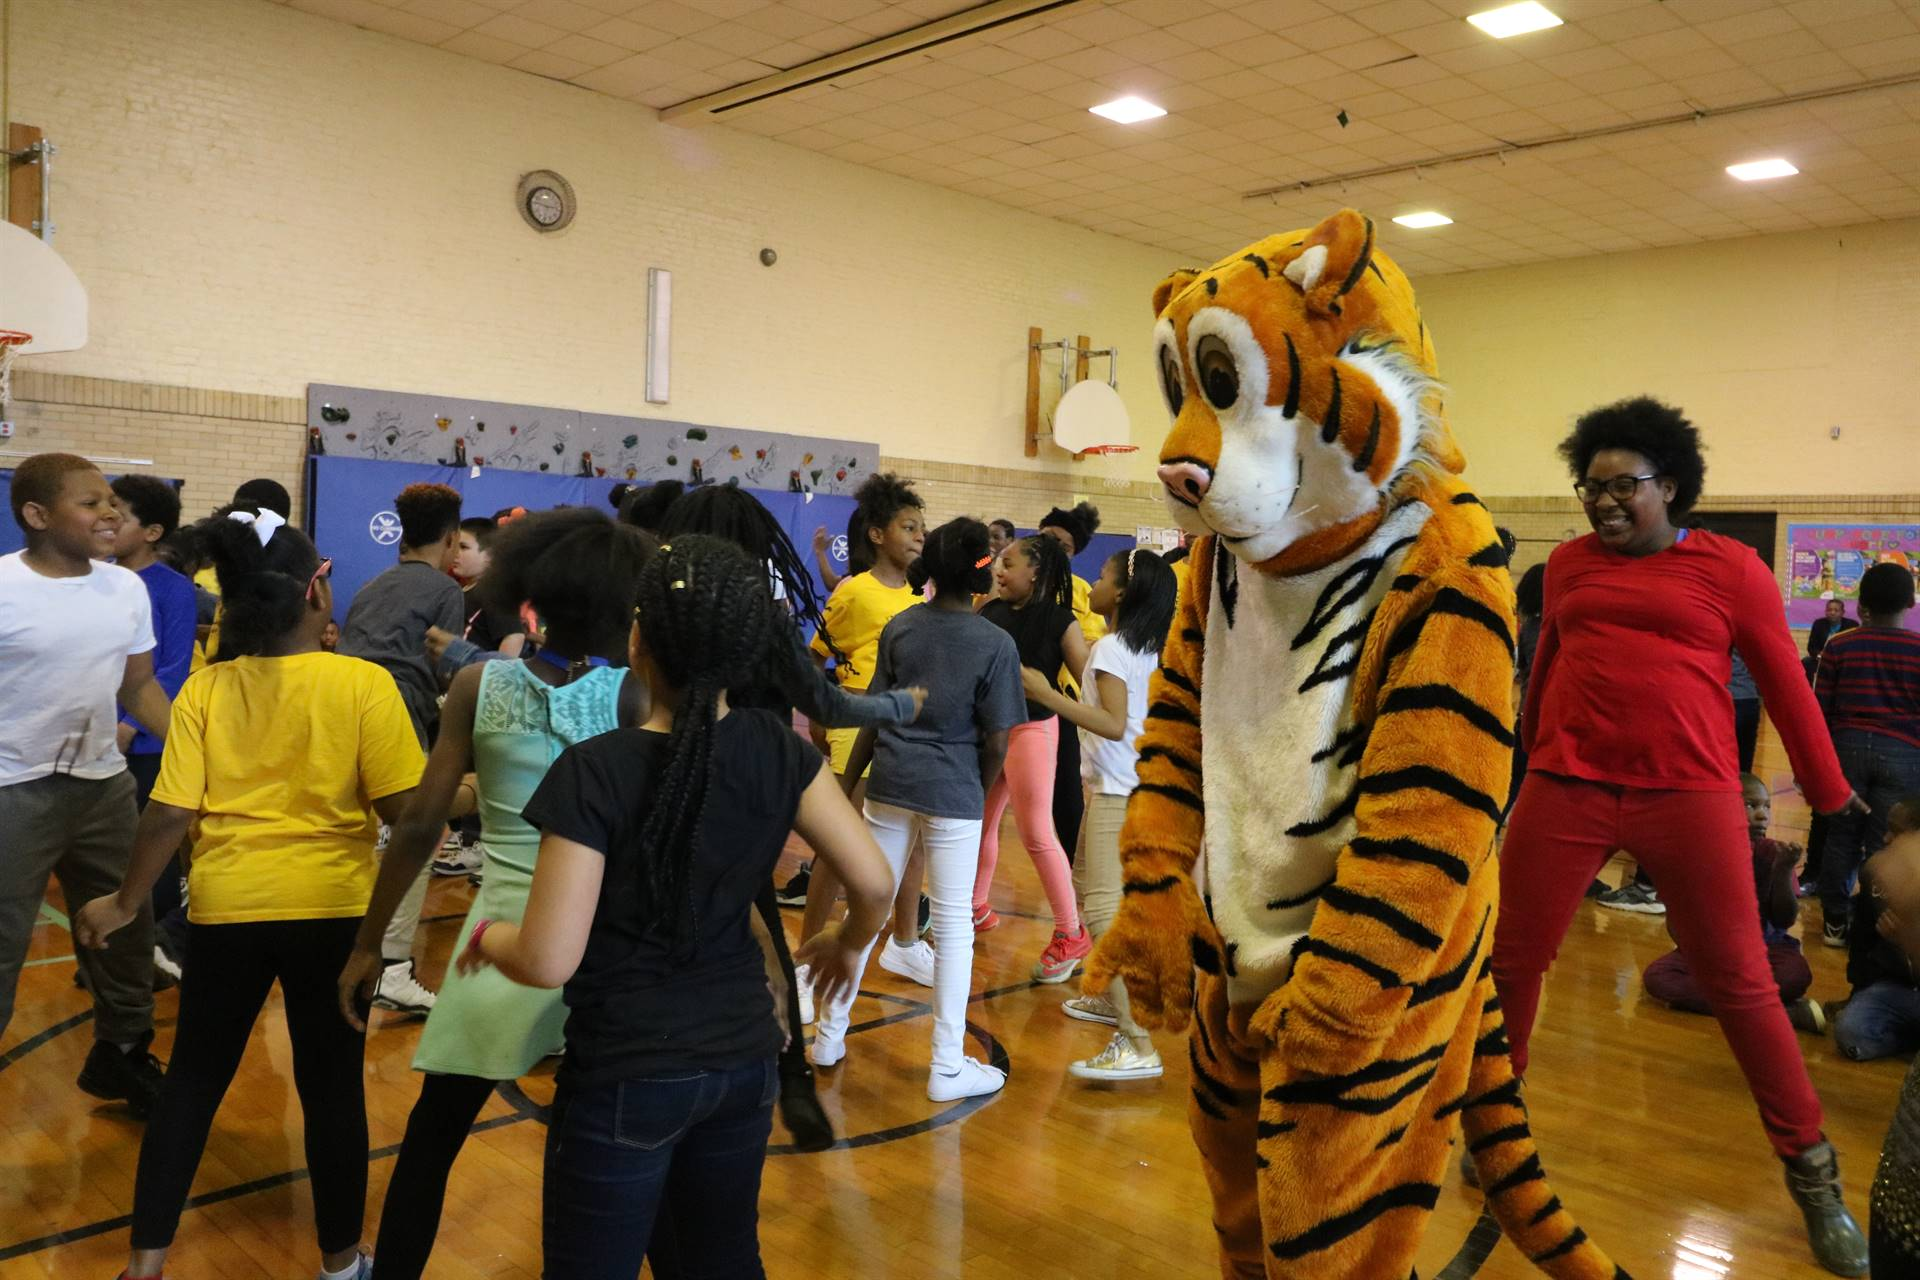 TJ the Tiger dances with students